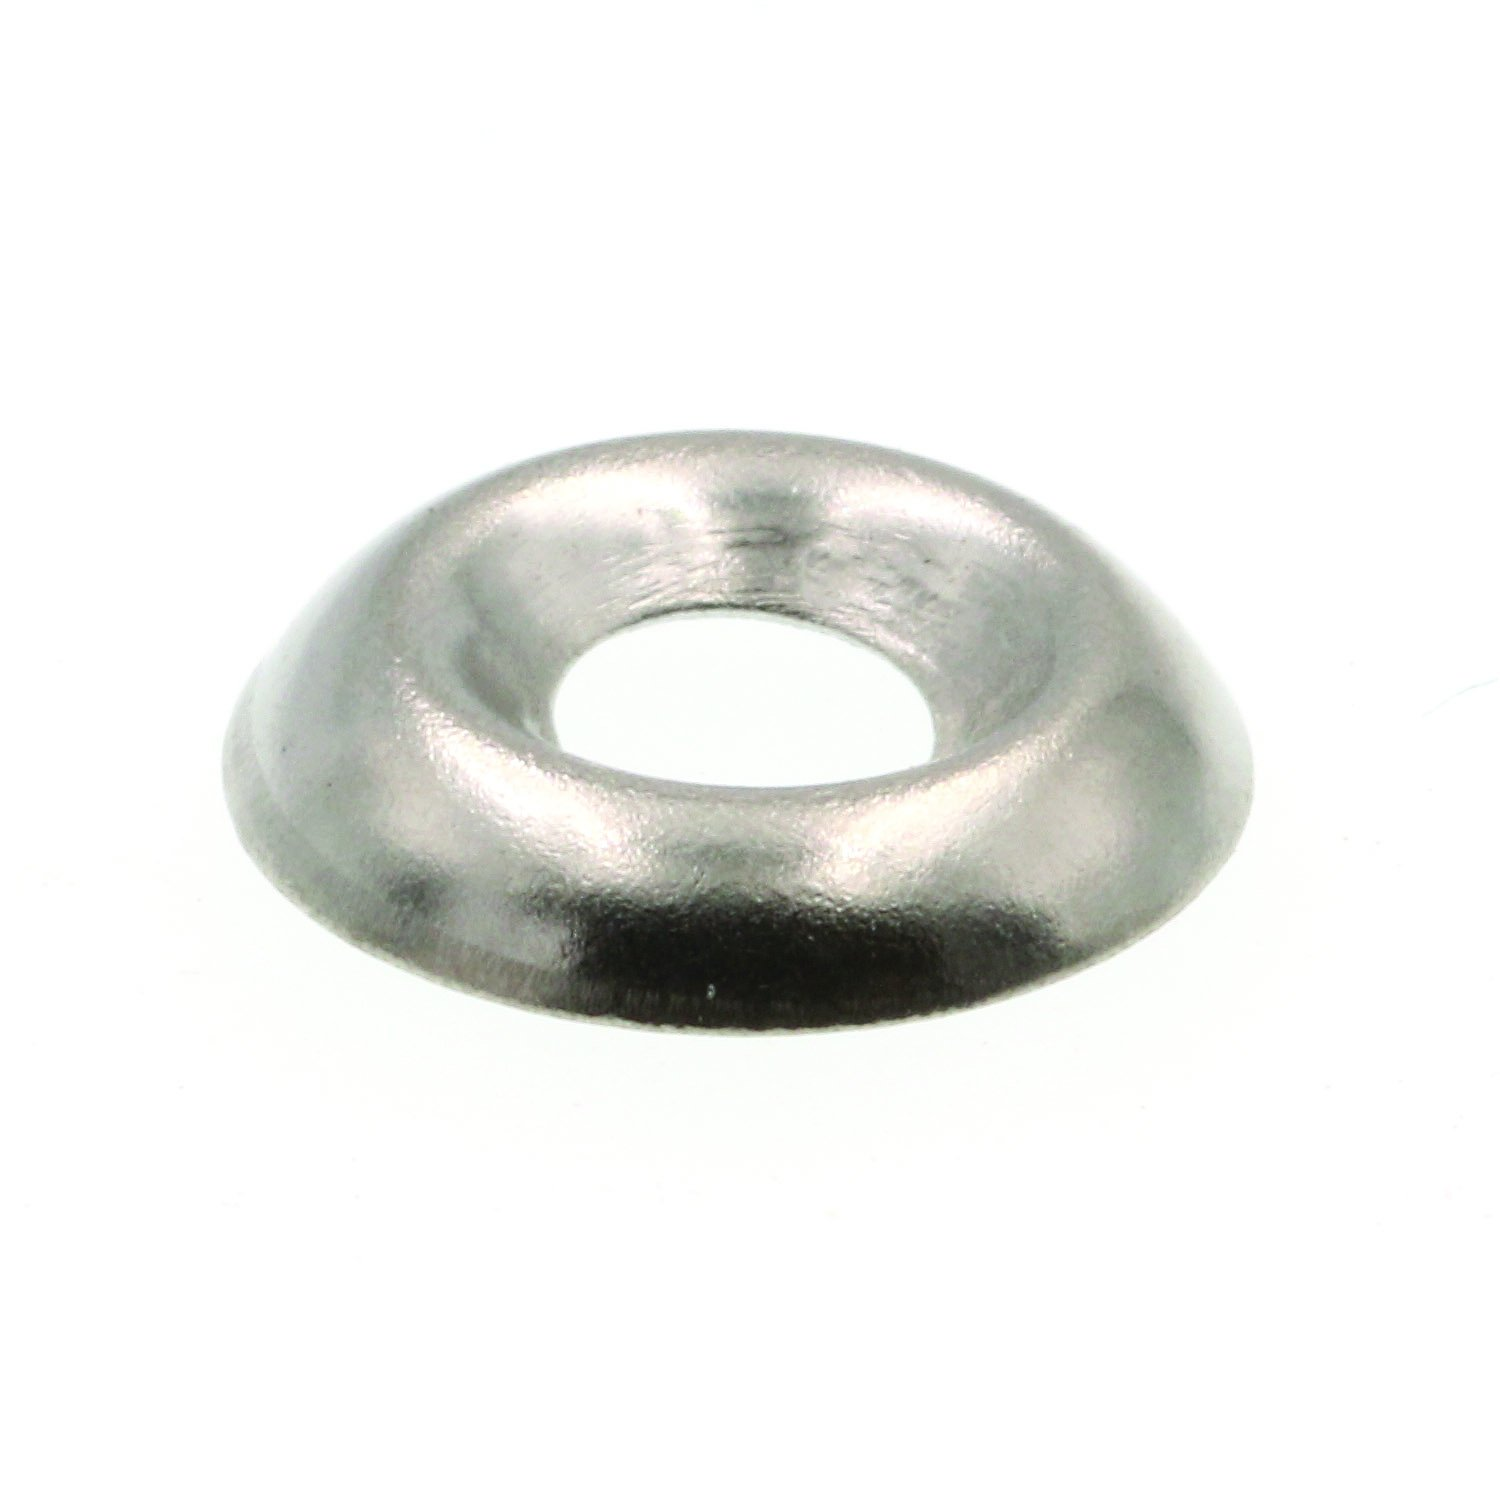 Prime-Line 9083578 Finishing Washers, Countersunk, #6, Grade 18-8 Stainless Steel, 50-Pack